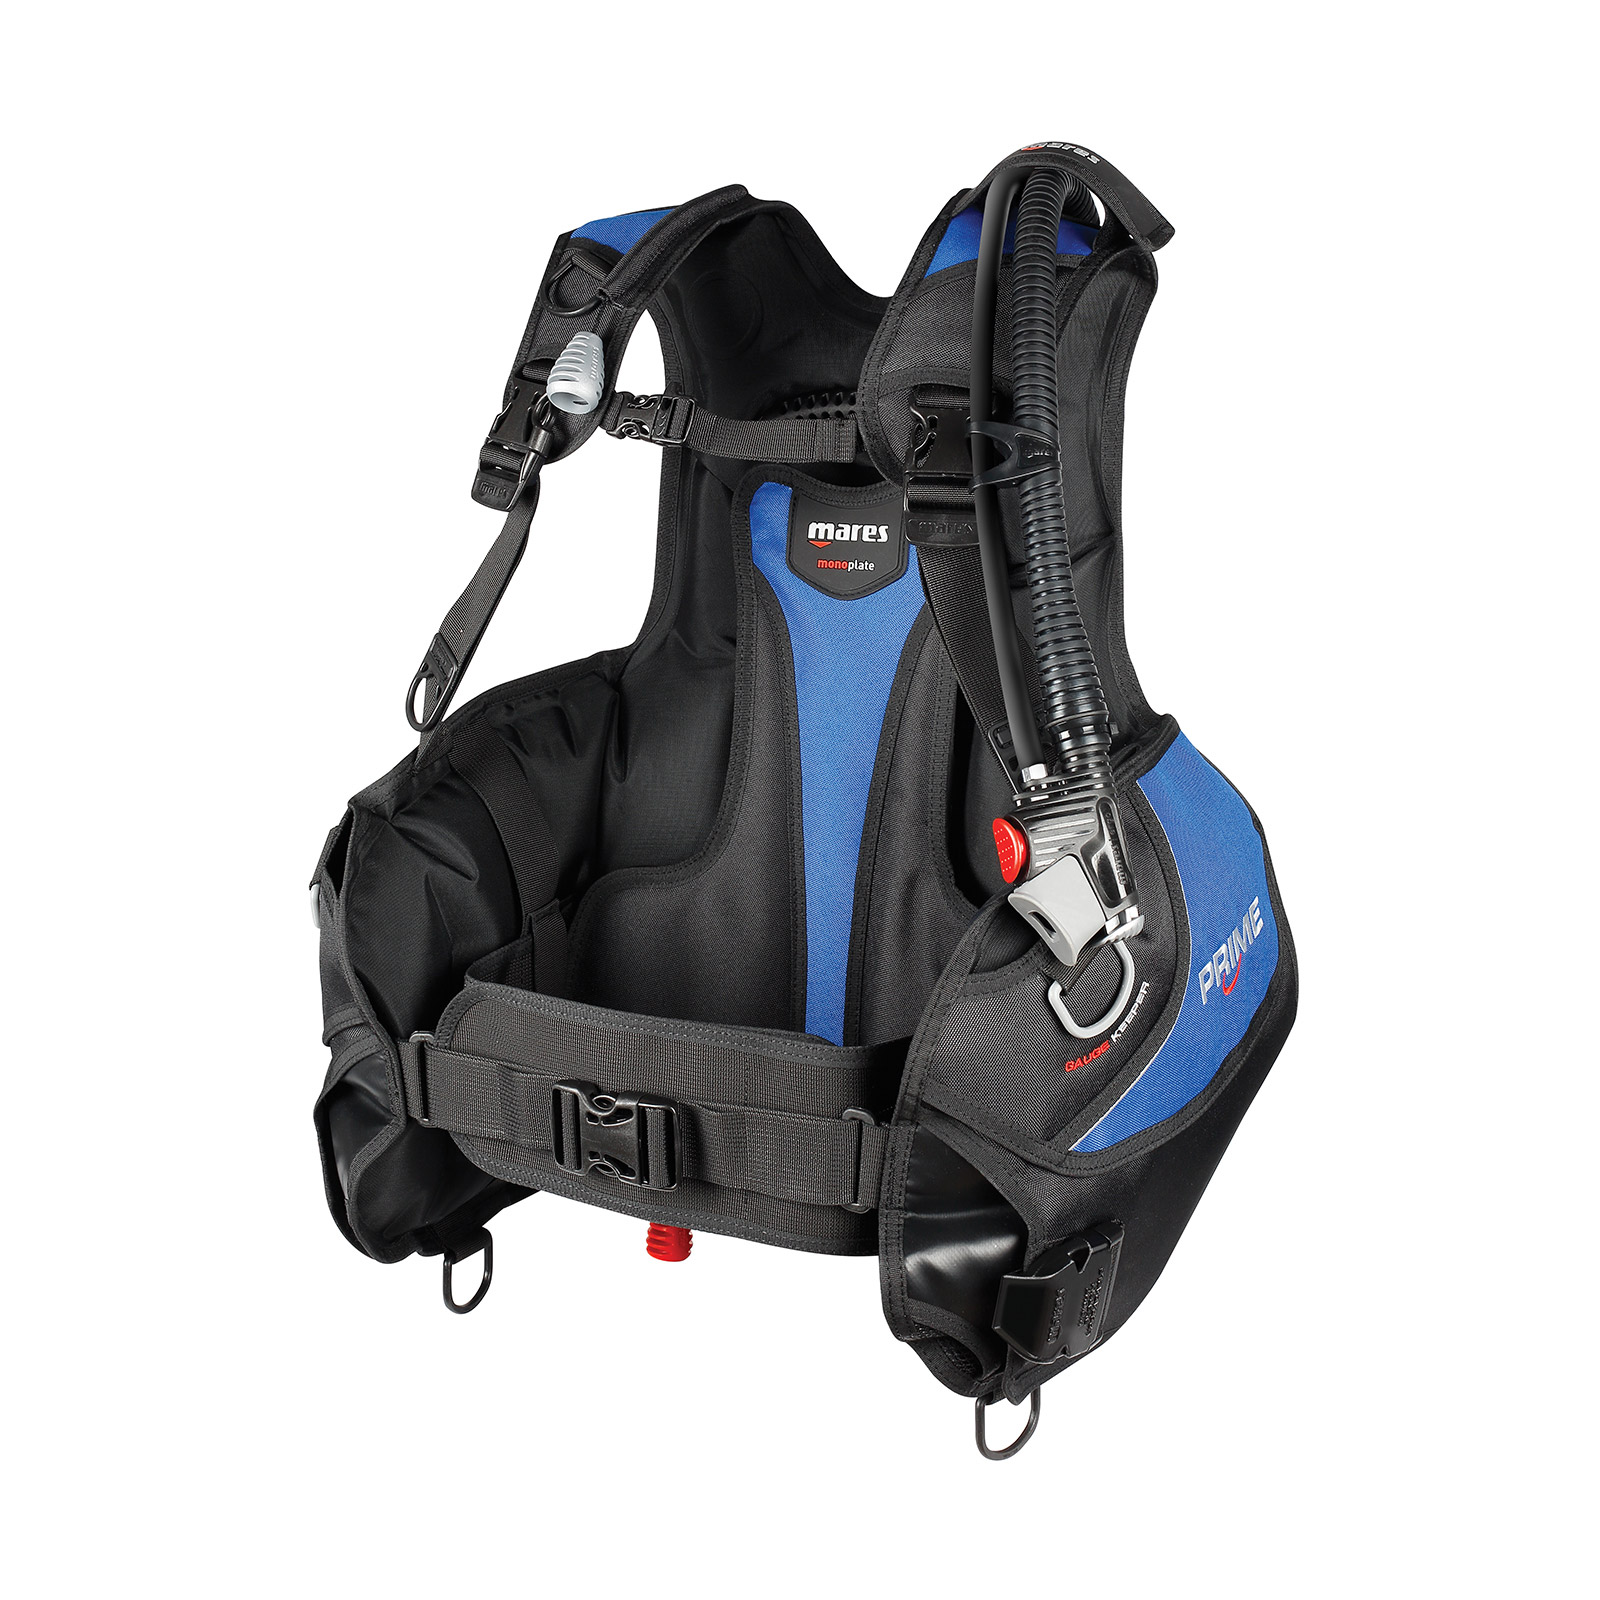 Bcd Prime Upgradable Extra Large